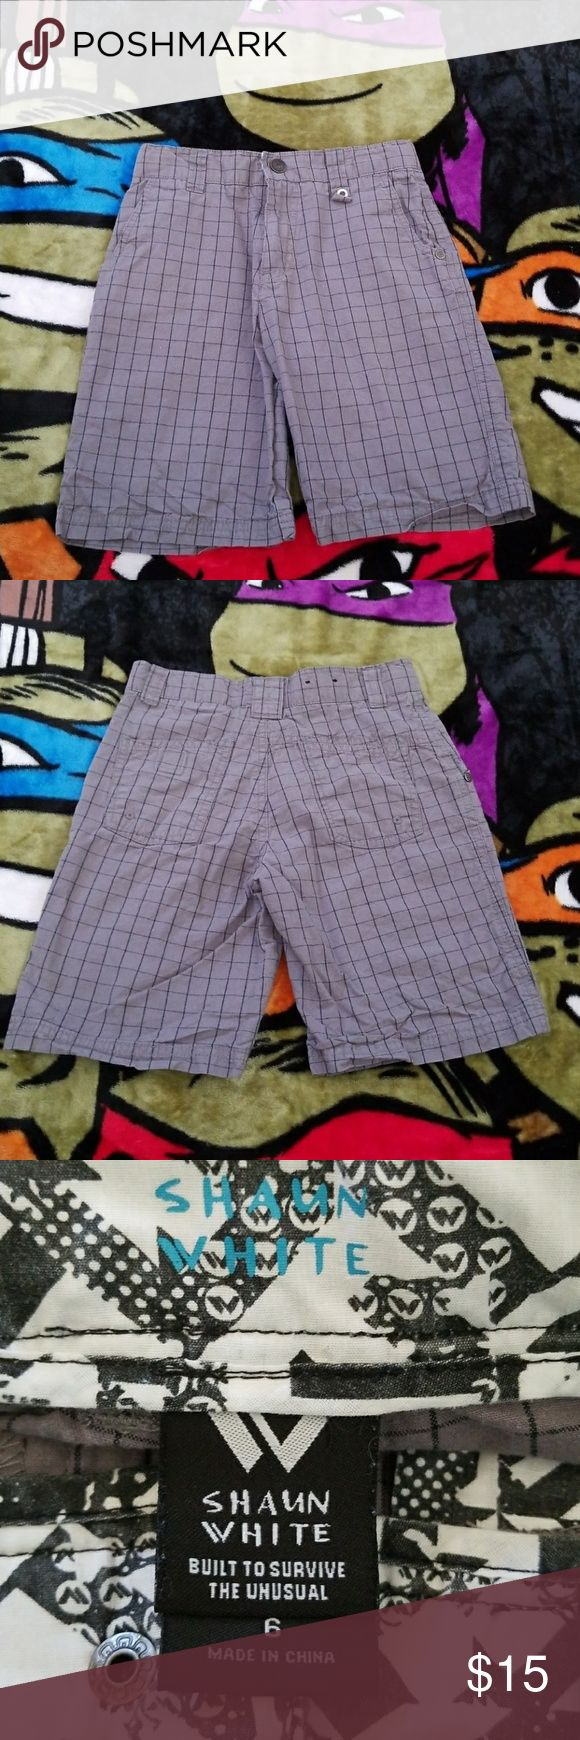 Boys size 6 grey & black grid Shaun White shorts Boys Size 6 Shaun White grey with black grid line design shorts with adjustable waistband and snap button closure. Comfortable and lightweight. 100% cotton. Gently used but in excellent condition. Shaun White Bottoms Shorts